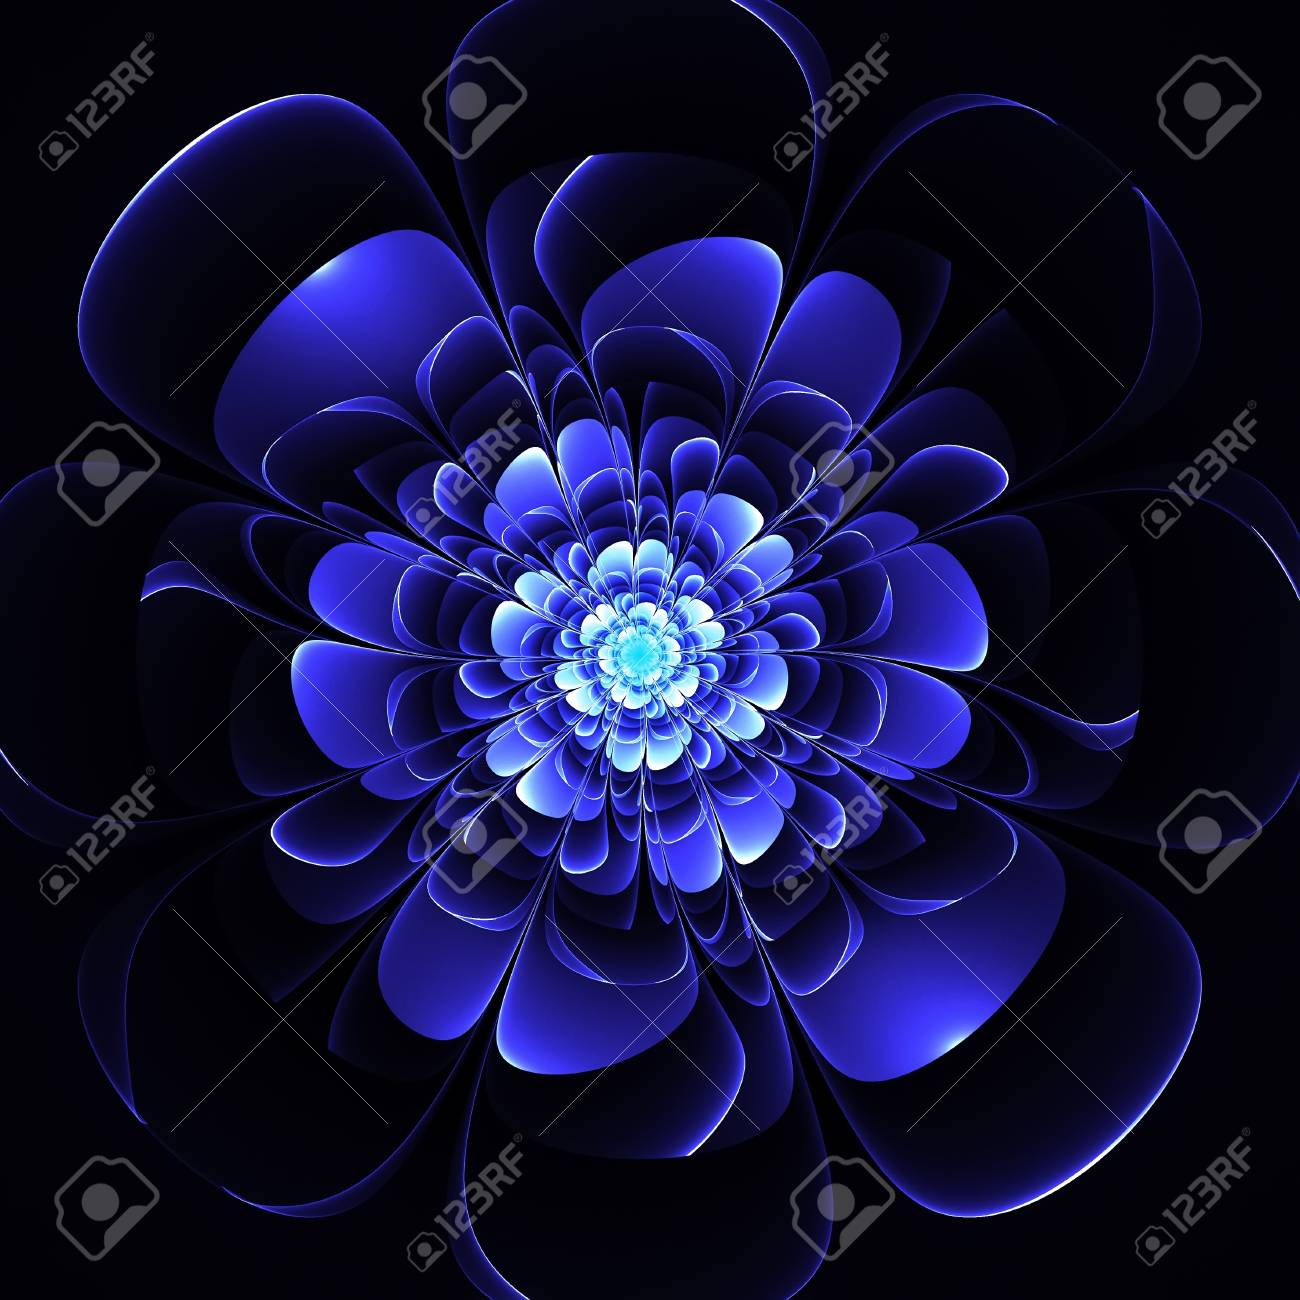 Beautiful Blue Flower On Black Background Computer Generated